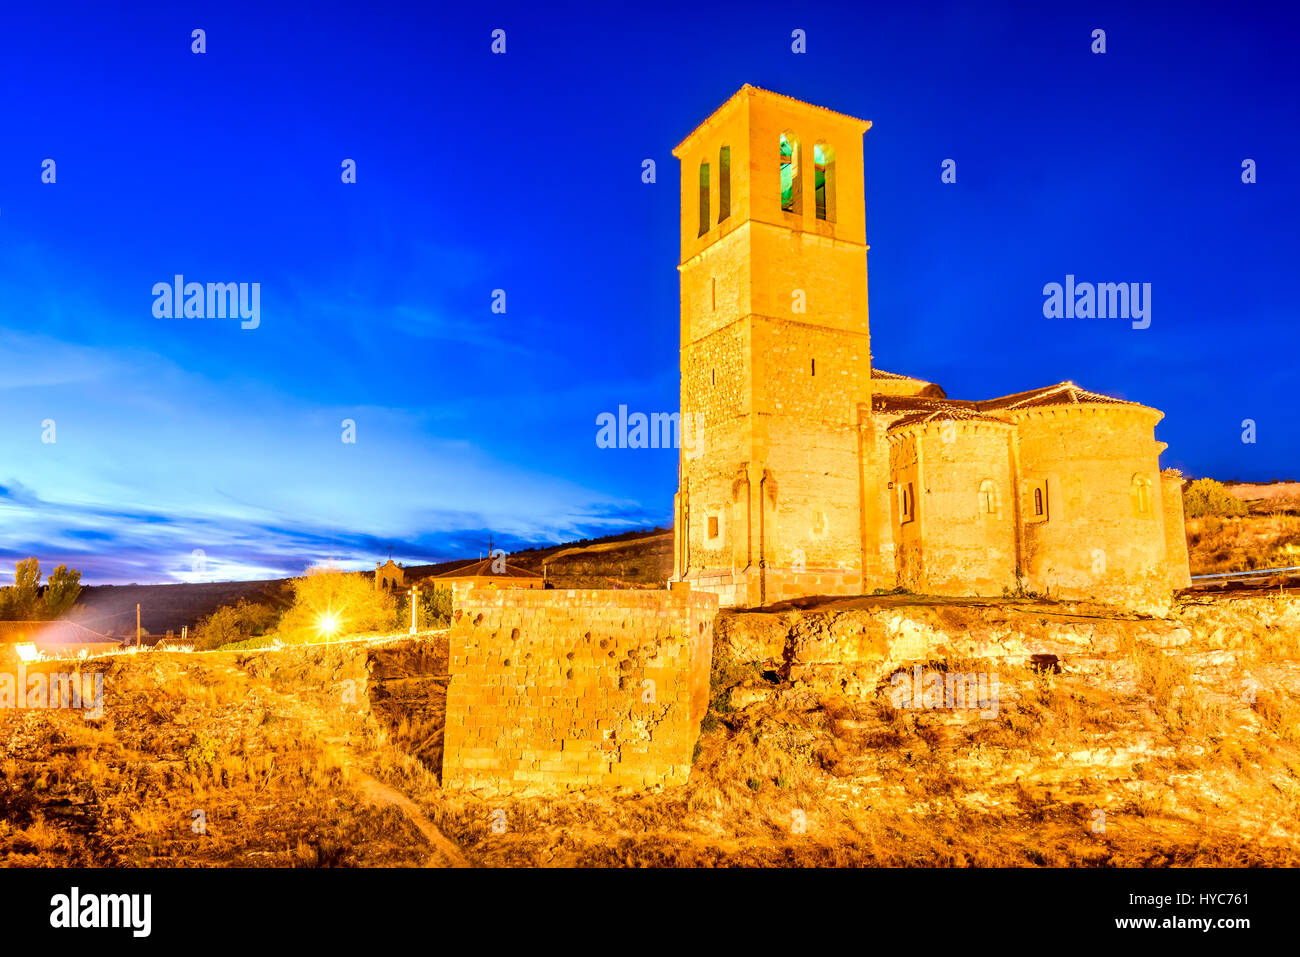 Segovia, Spain. 12-sided church of Vera Cruz built by Knights Templar in 13th century. - Stock Image